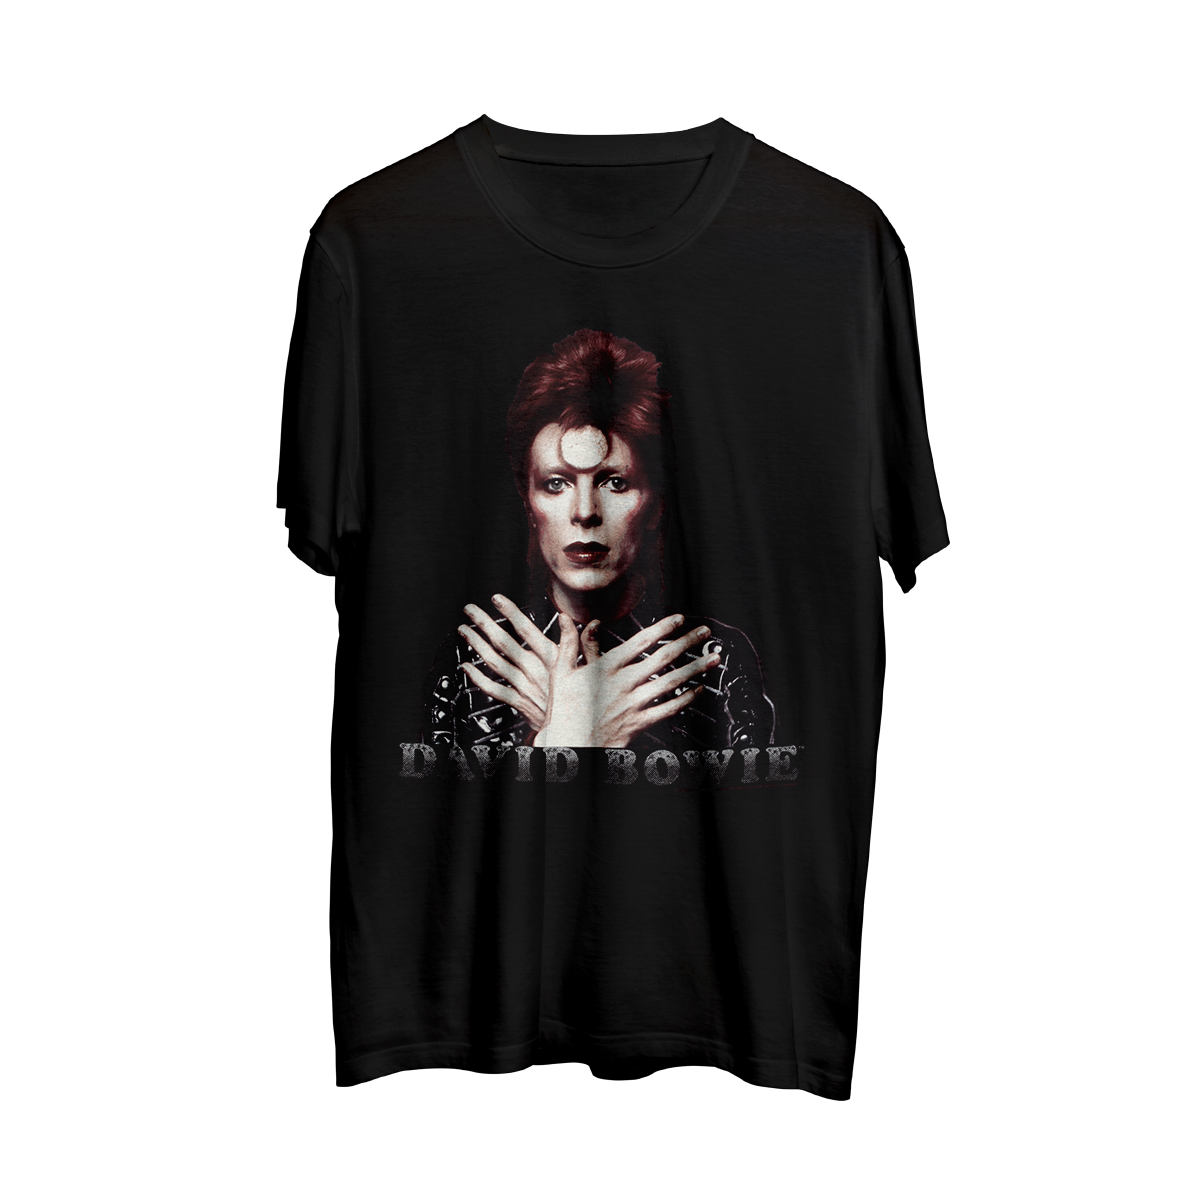 David Bowie Crossed Hands T-Shirt